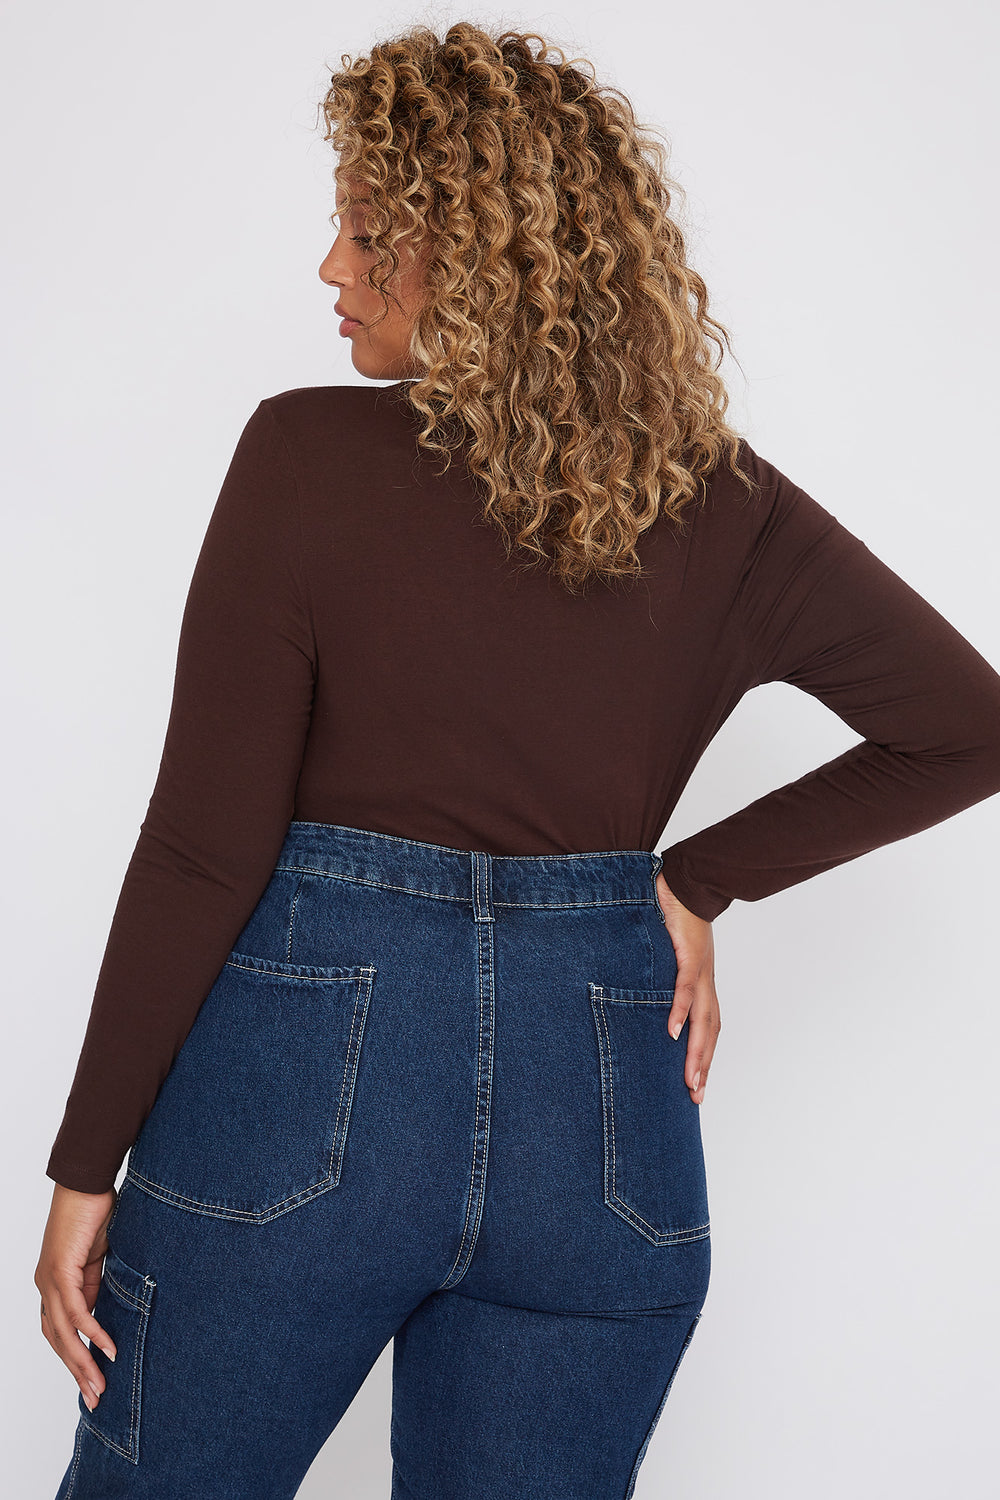 Plus Size Basic V-Neck Long Sleeve Brown